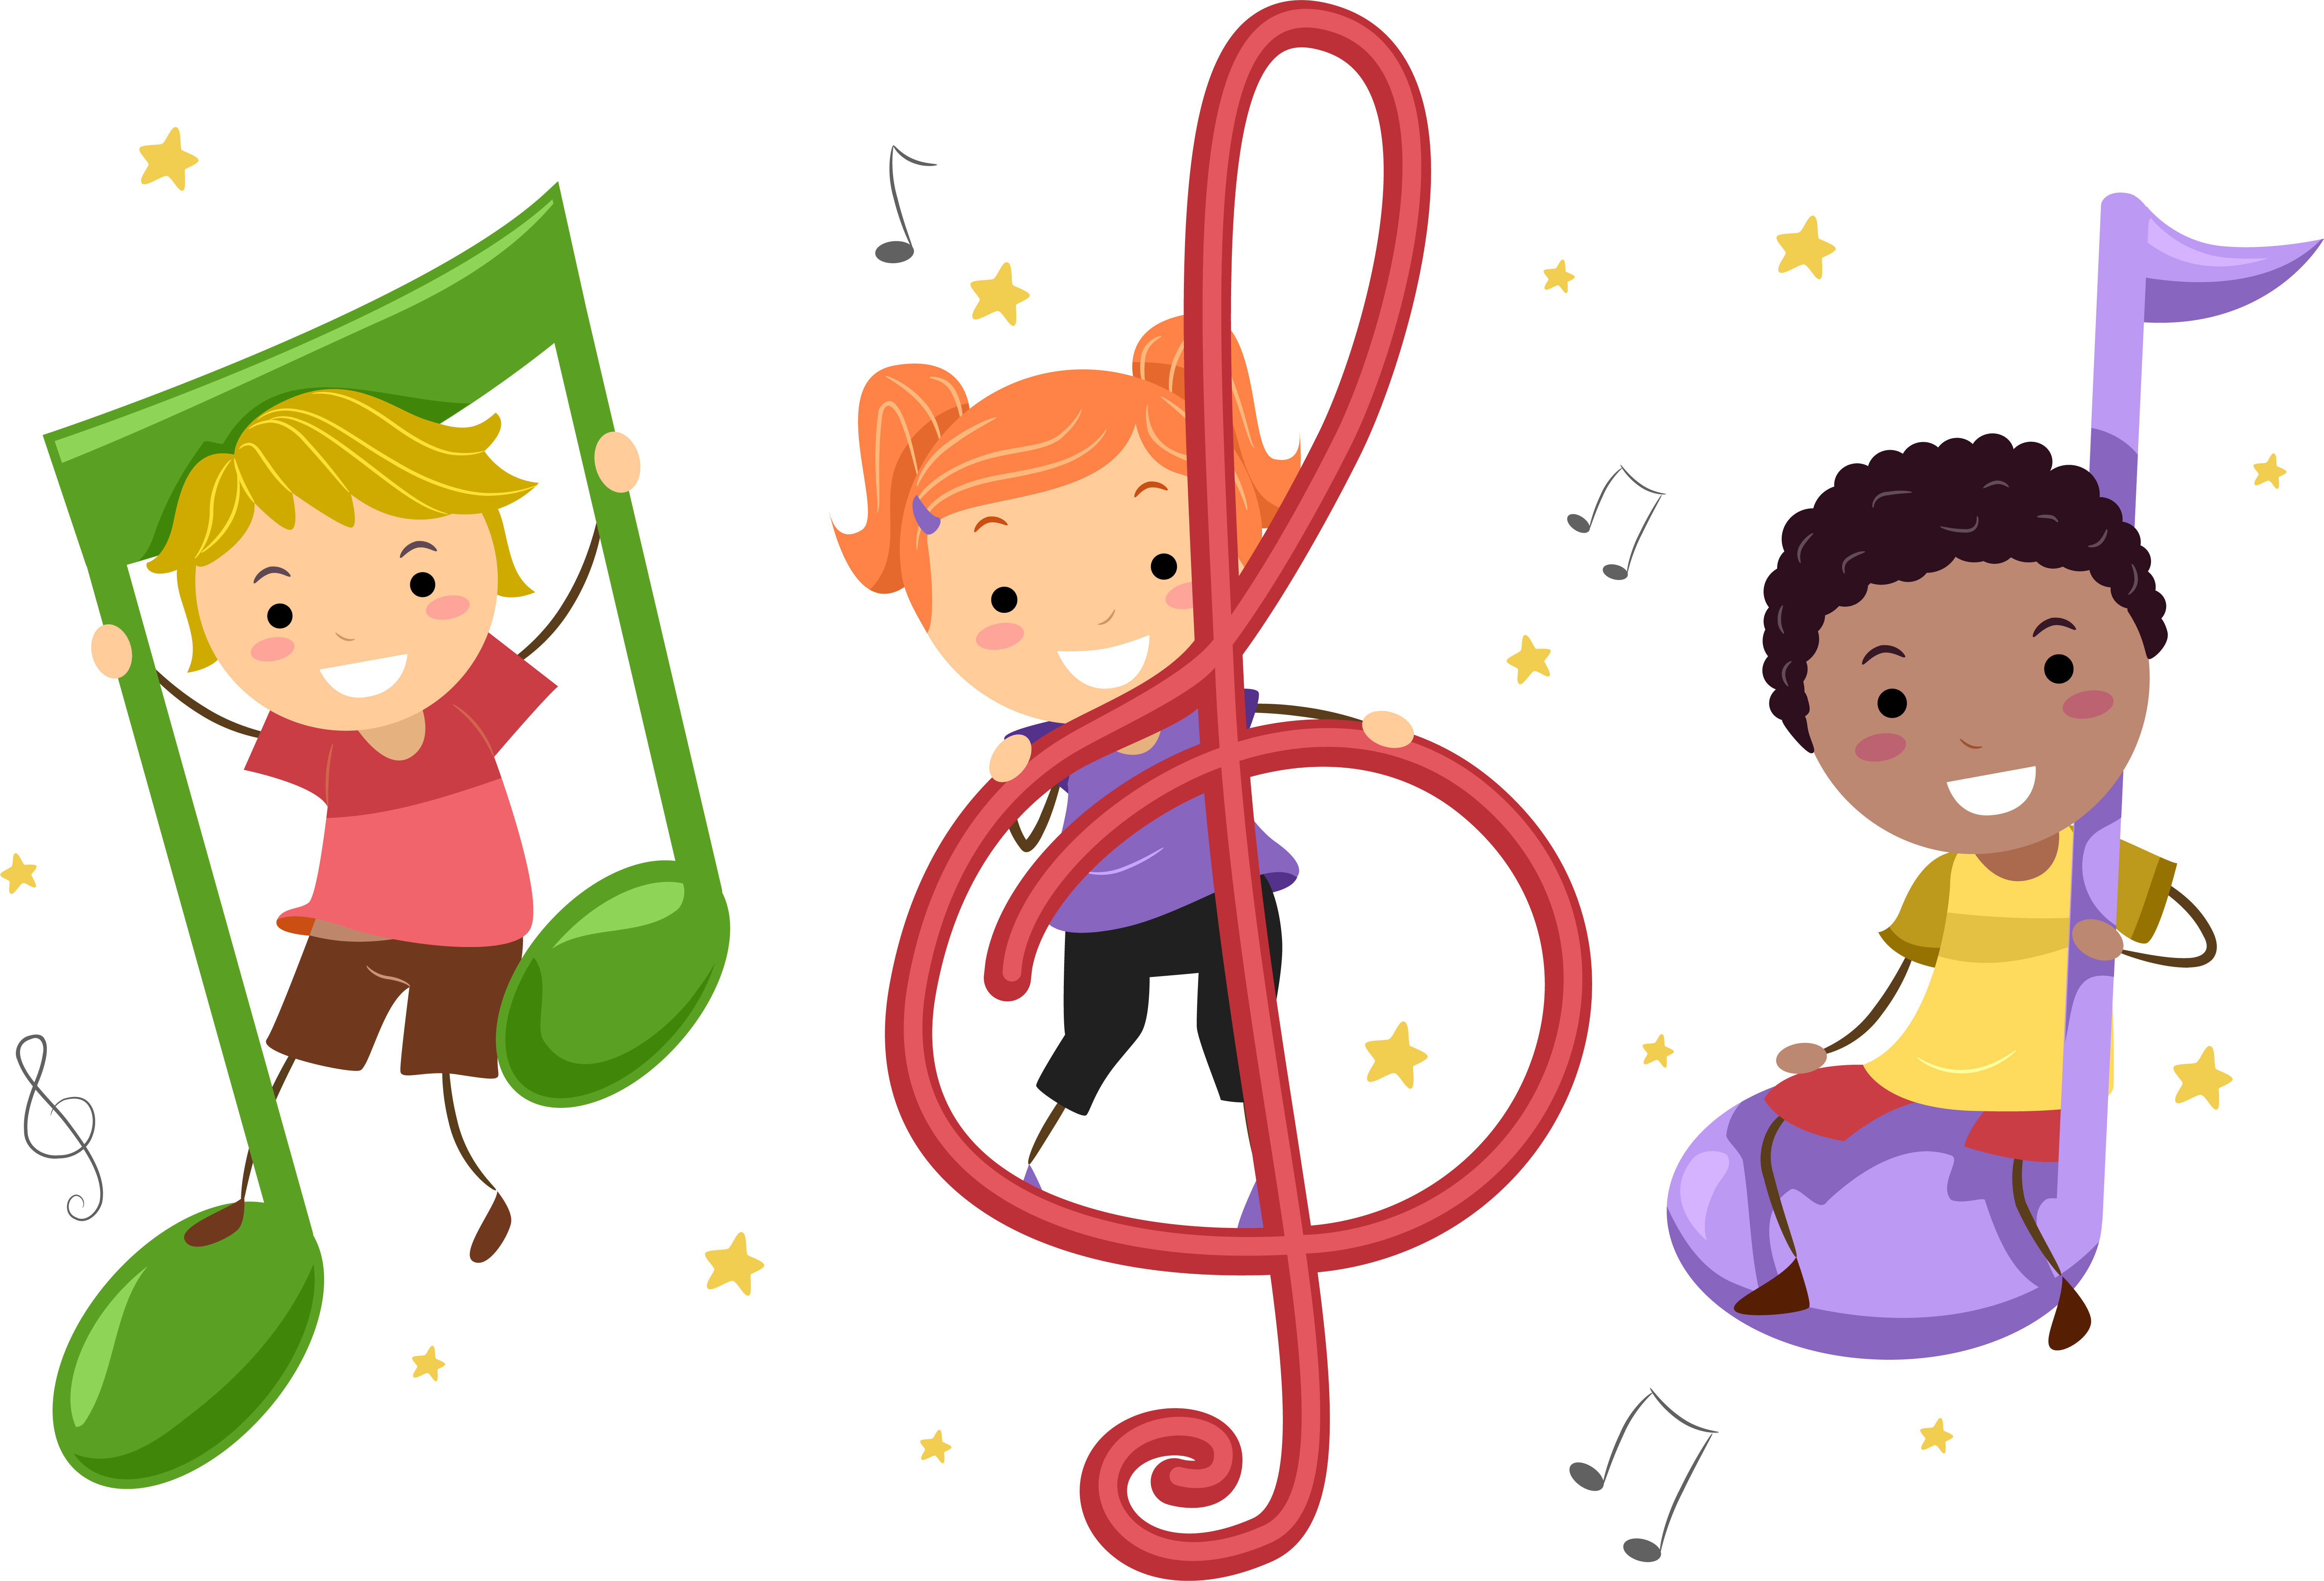 Kids playing music clipart clip freeuse library Kids Playing Music Clipart   Free download best Kids Playing ... clip freeuse library